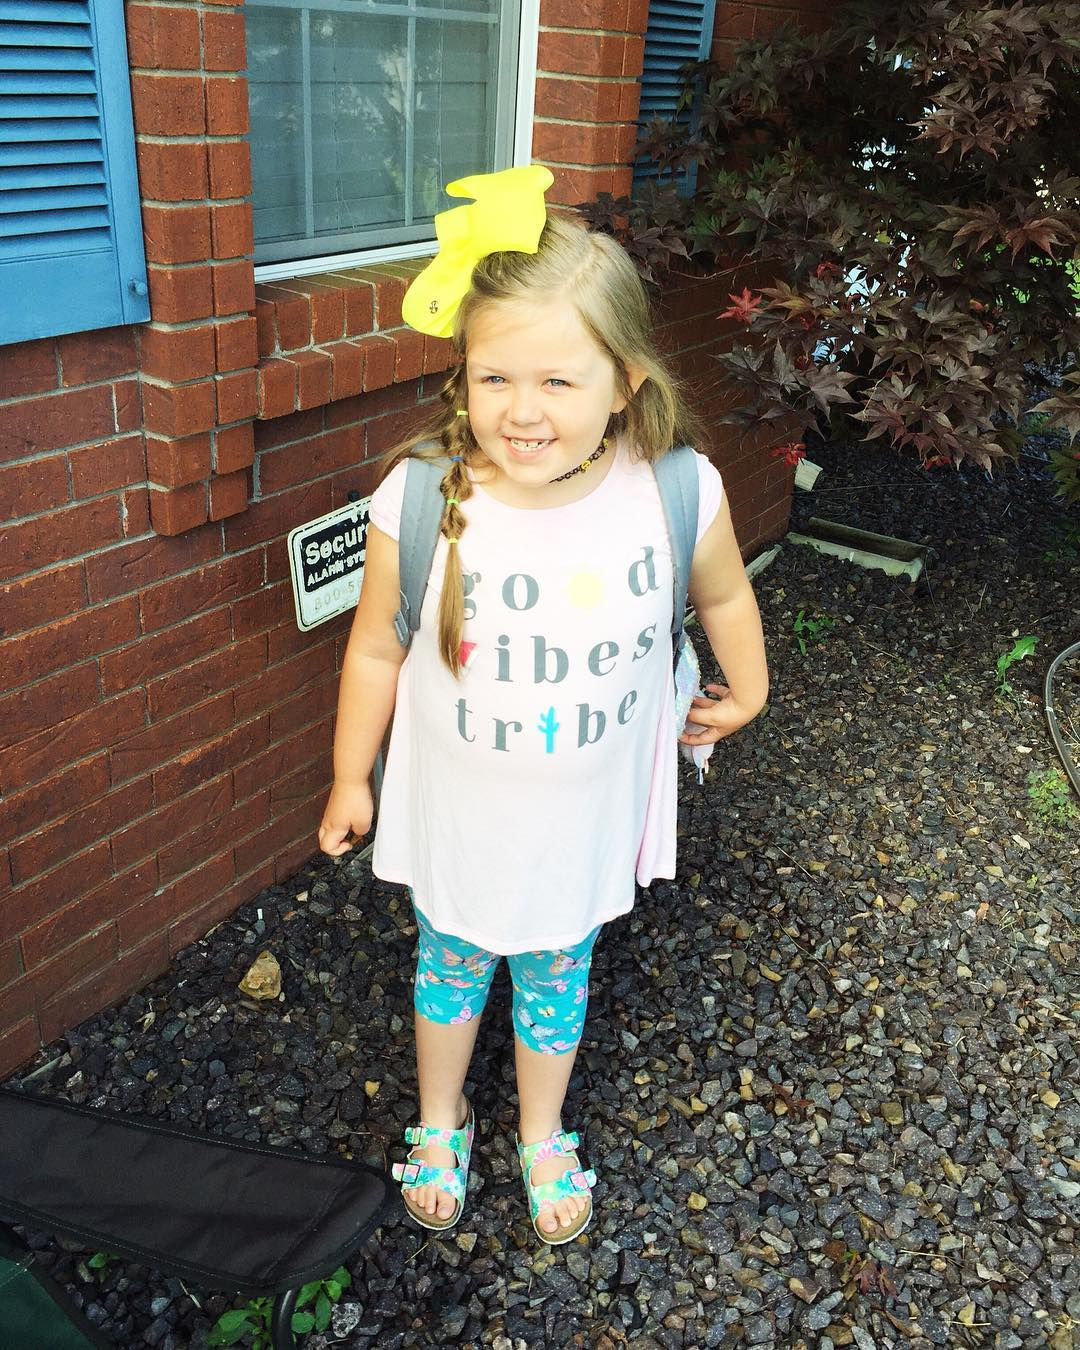 Last day of school!! - I cannot believe that Paisleigh is already a 2nd grader! How can this be happening already, and how am I so old?! Somebody pass the Kleenex!